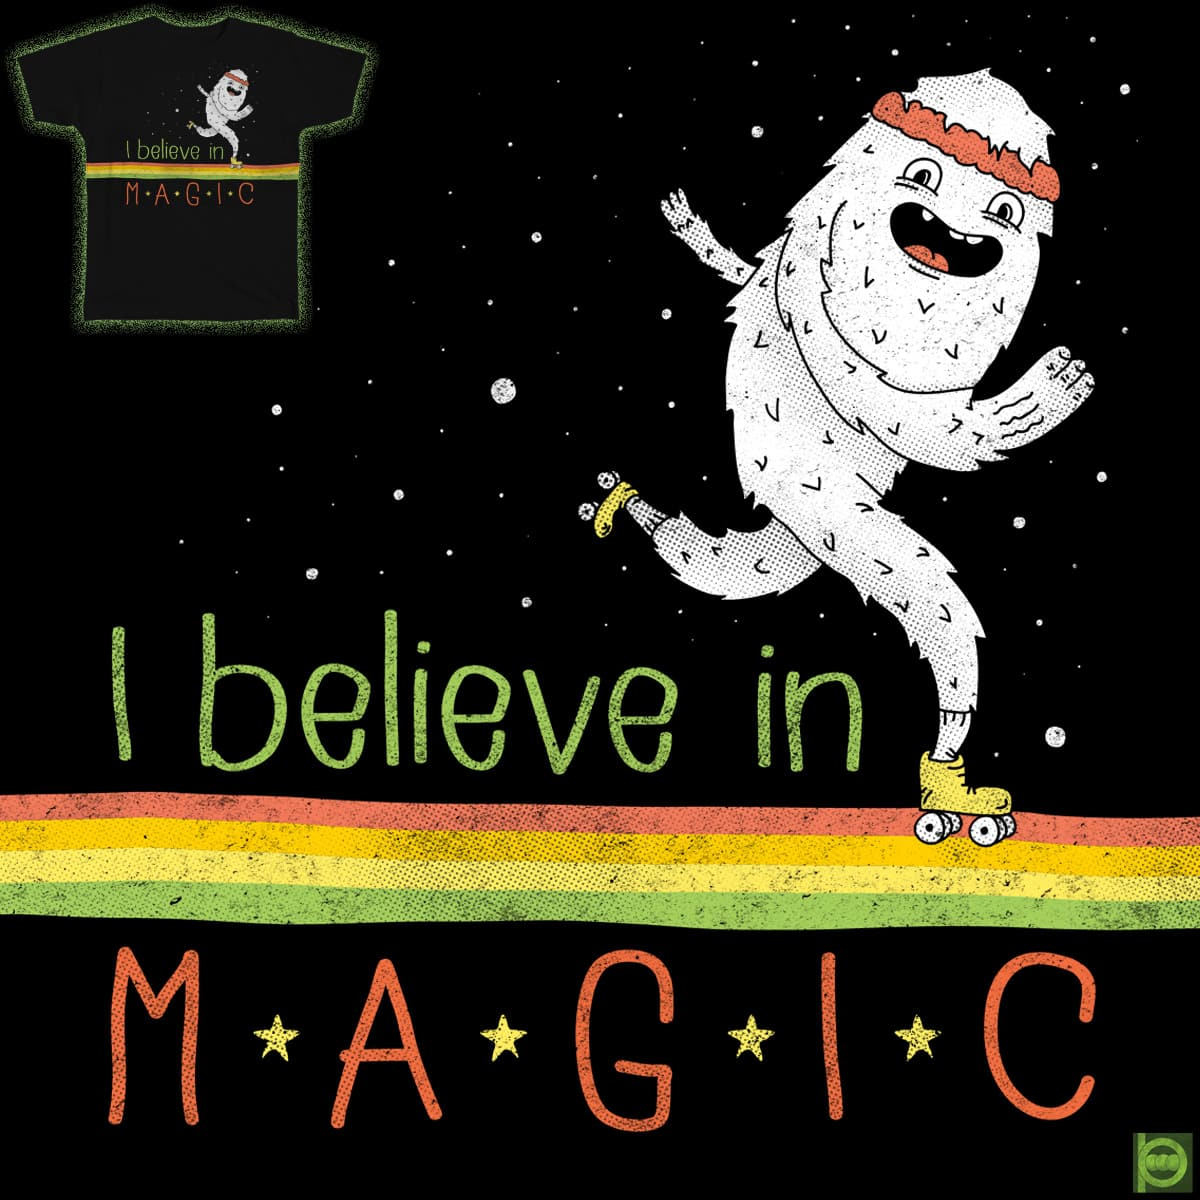 MAGIC IS REAL! by BeanePod on Threadless